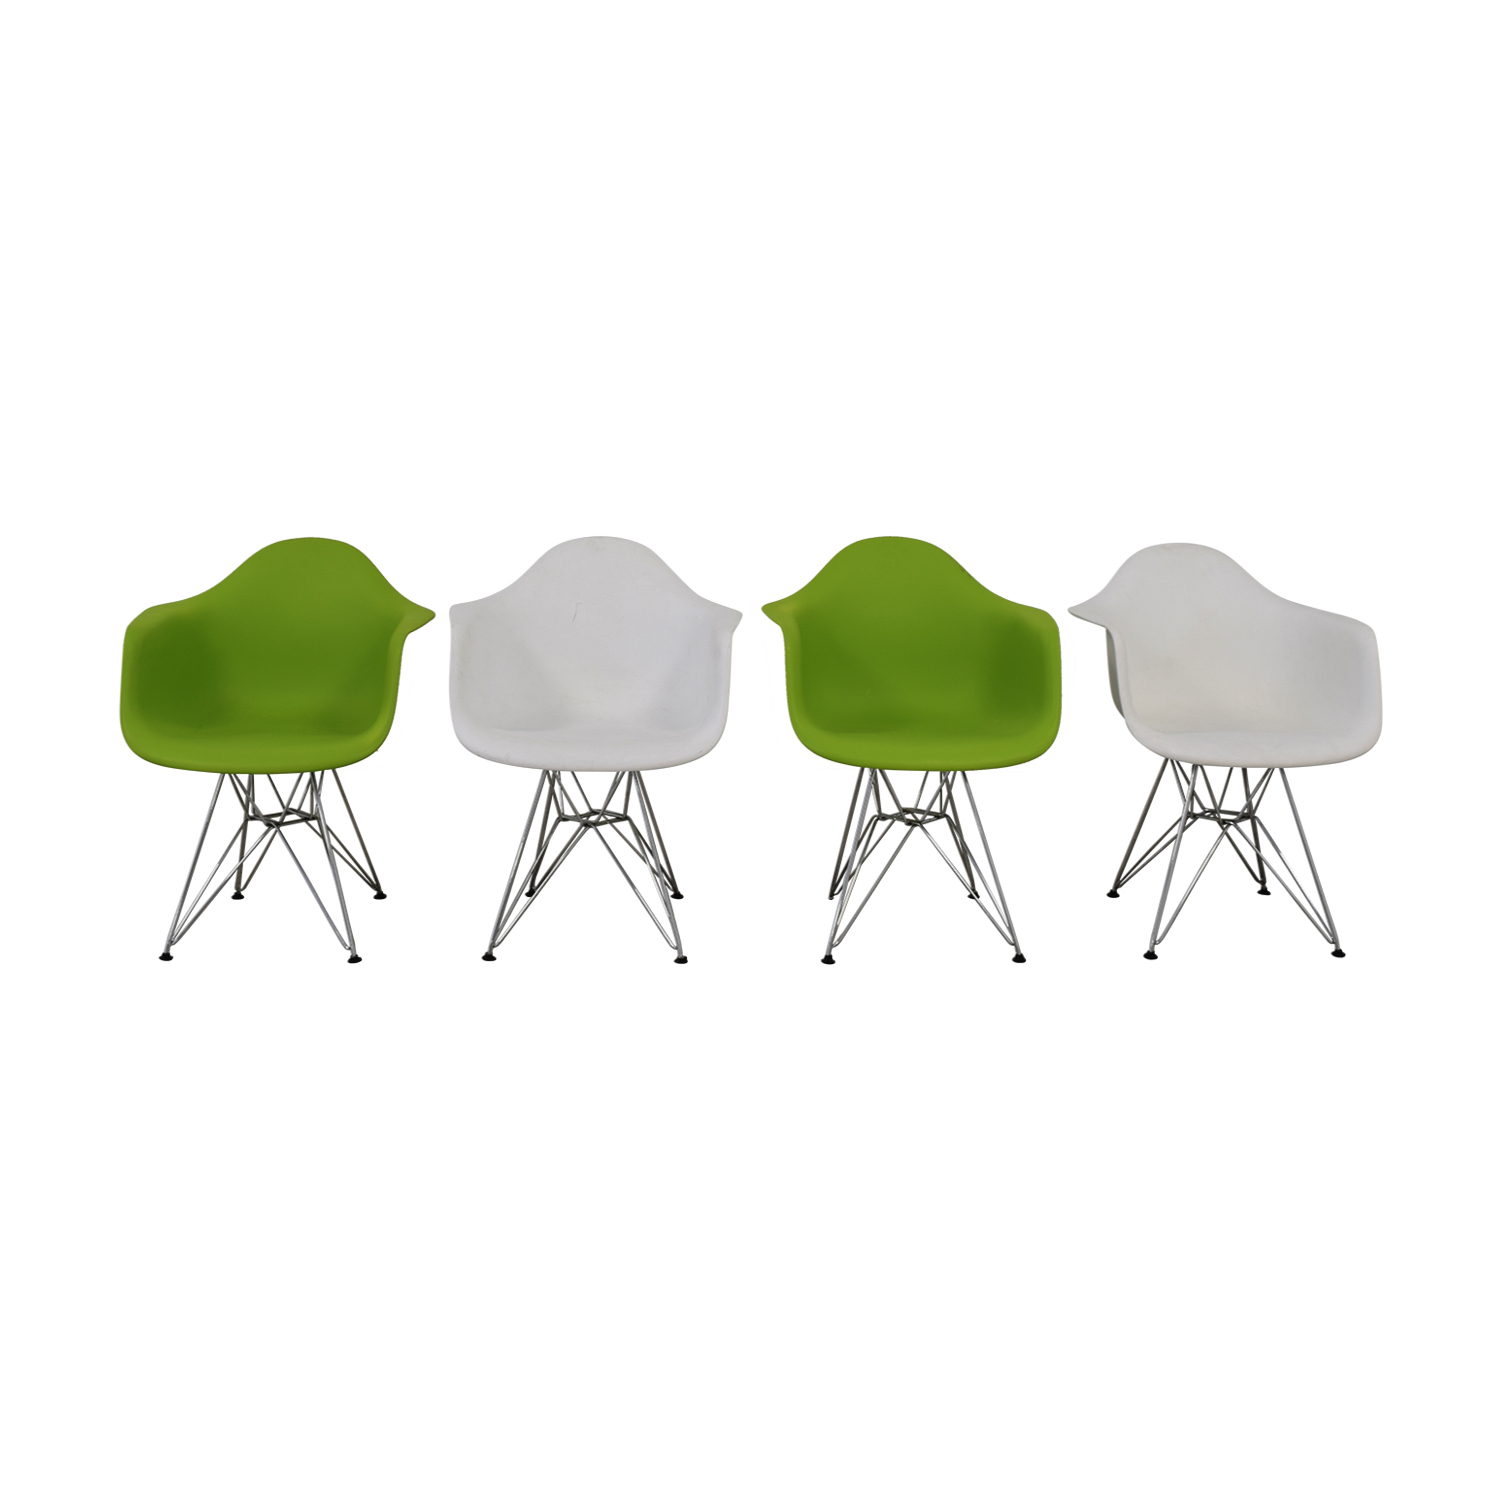 Eames Eiffel 56 Off Replica Eames Eiffel Style Green And White Chairs Chairs